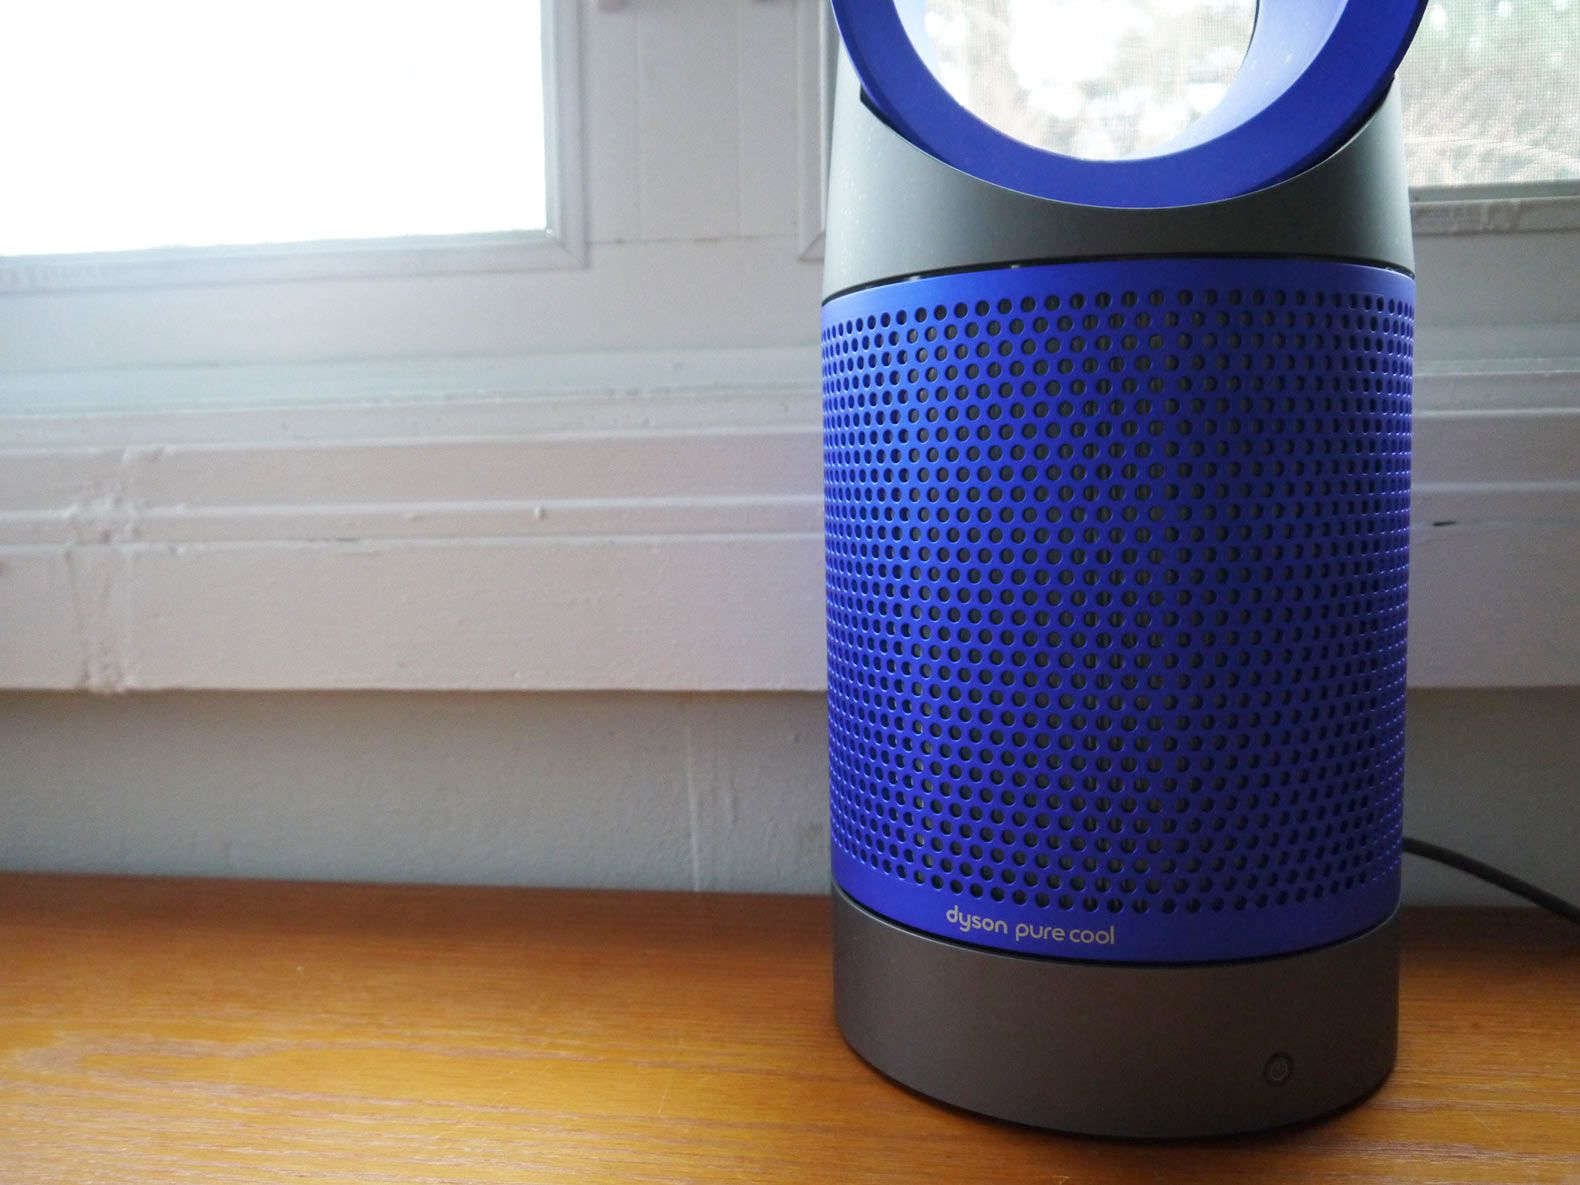 Dyson S Super Quiet Pure Cool Air Purifier Removes 99 95 Of Harmful Particles From The Air Air Purifier Cool Stuff Air Purifier Reviews